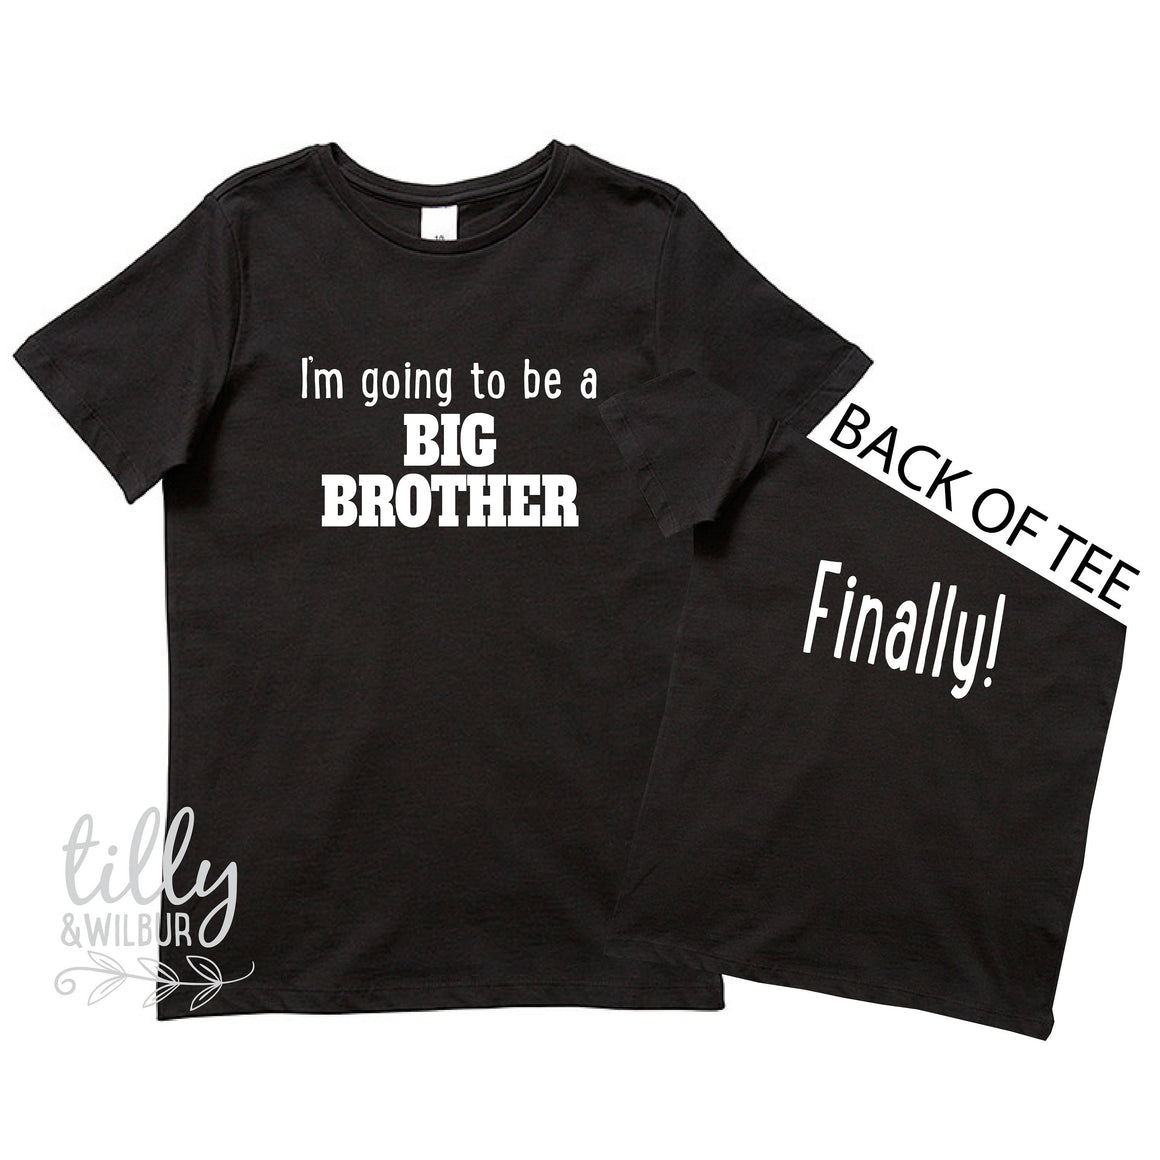 Big Brother T-Shirt, I'm Going To Be A Big Brother Finally! Front And Back Print, Sibling Shirt, Pregnancy Announcement, brother Reveal